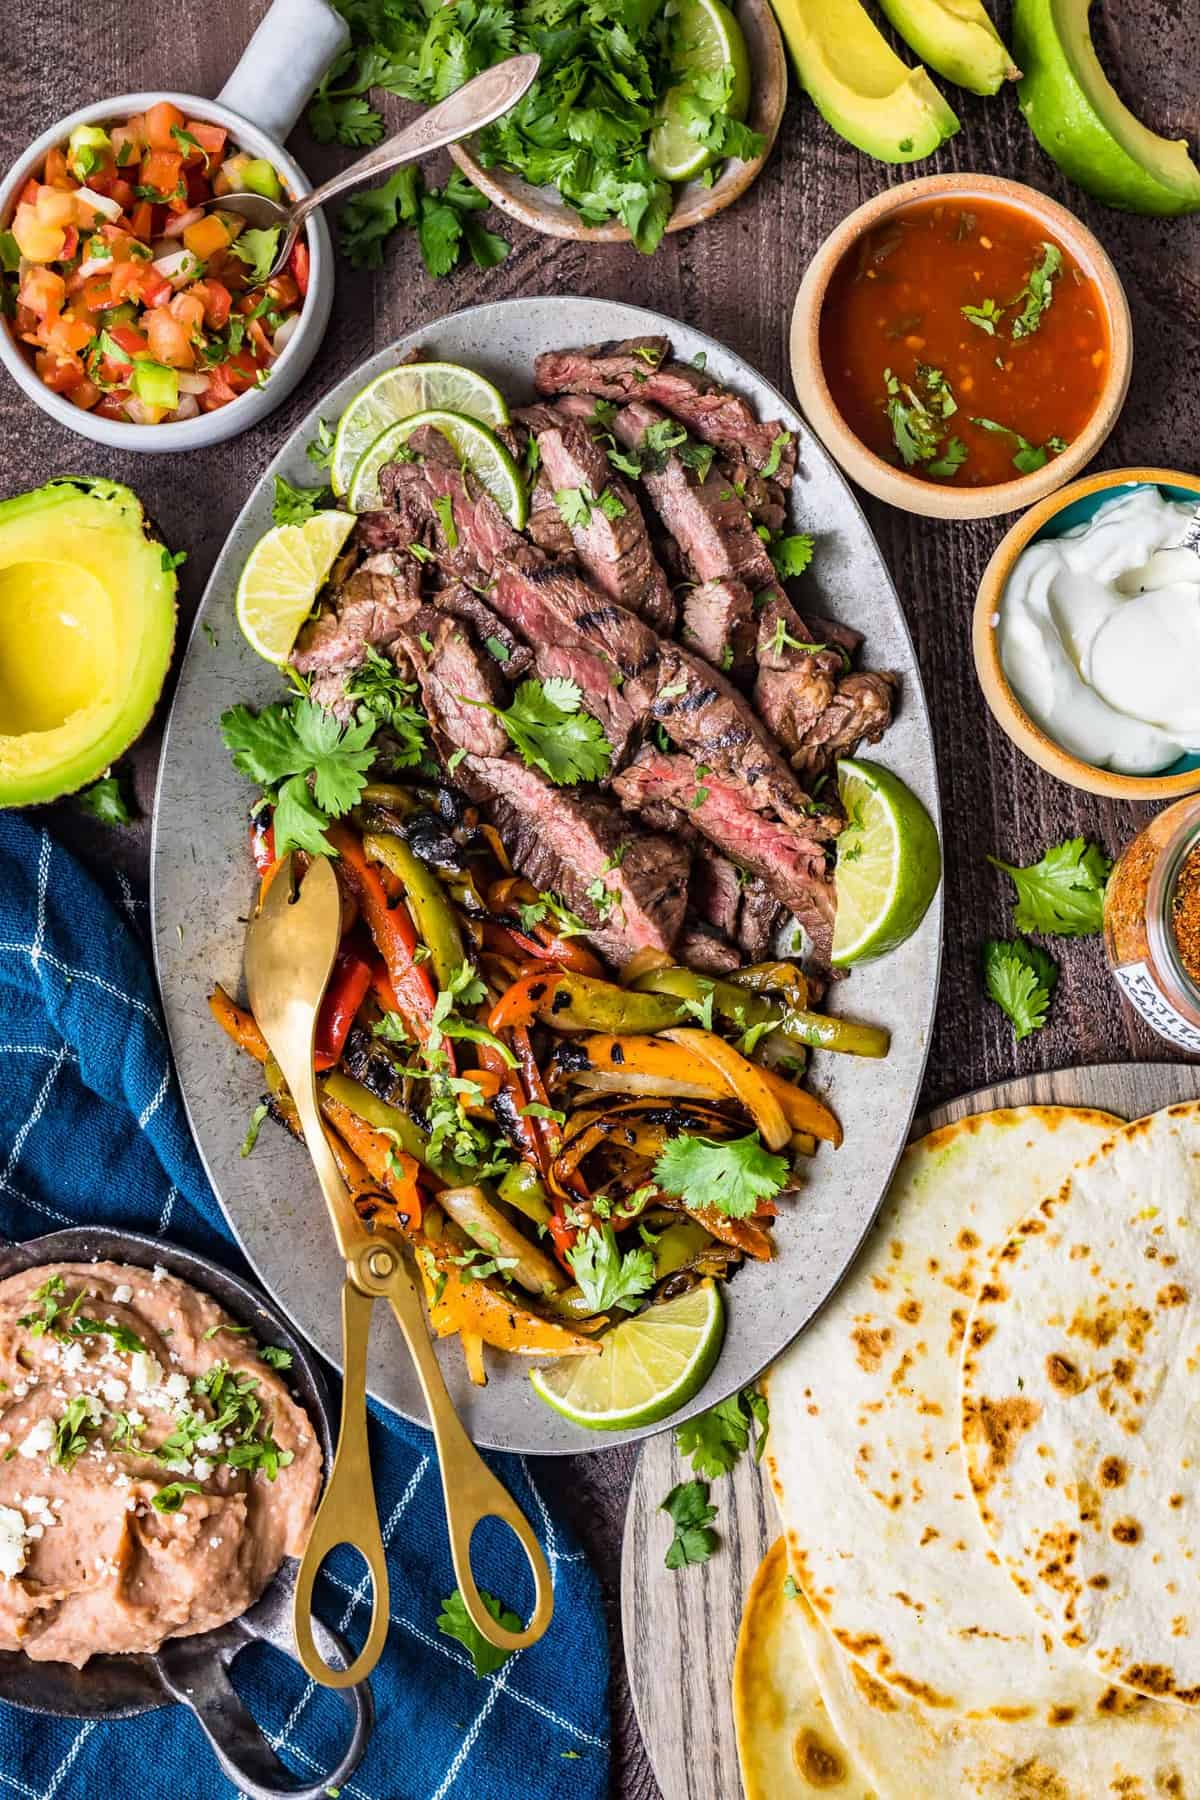 Steak fajitas on a serving plate next to sides and toppings